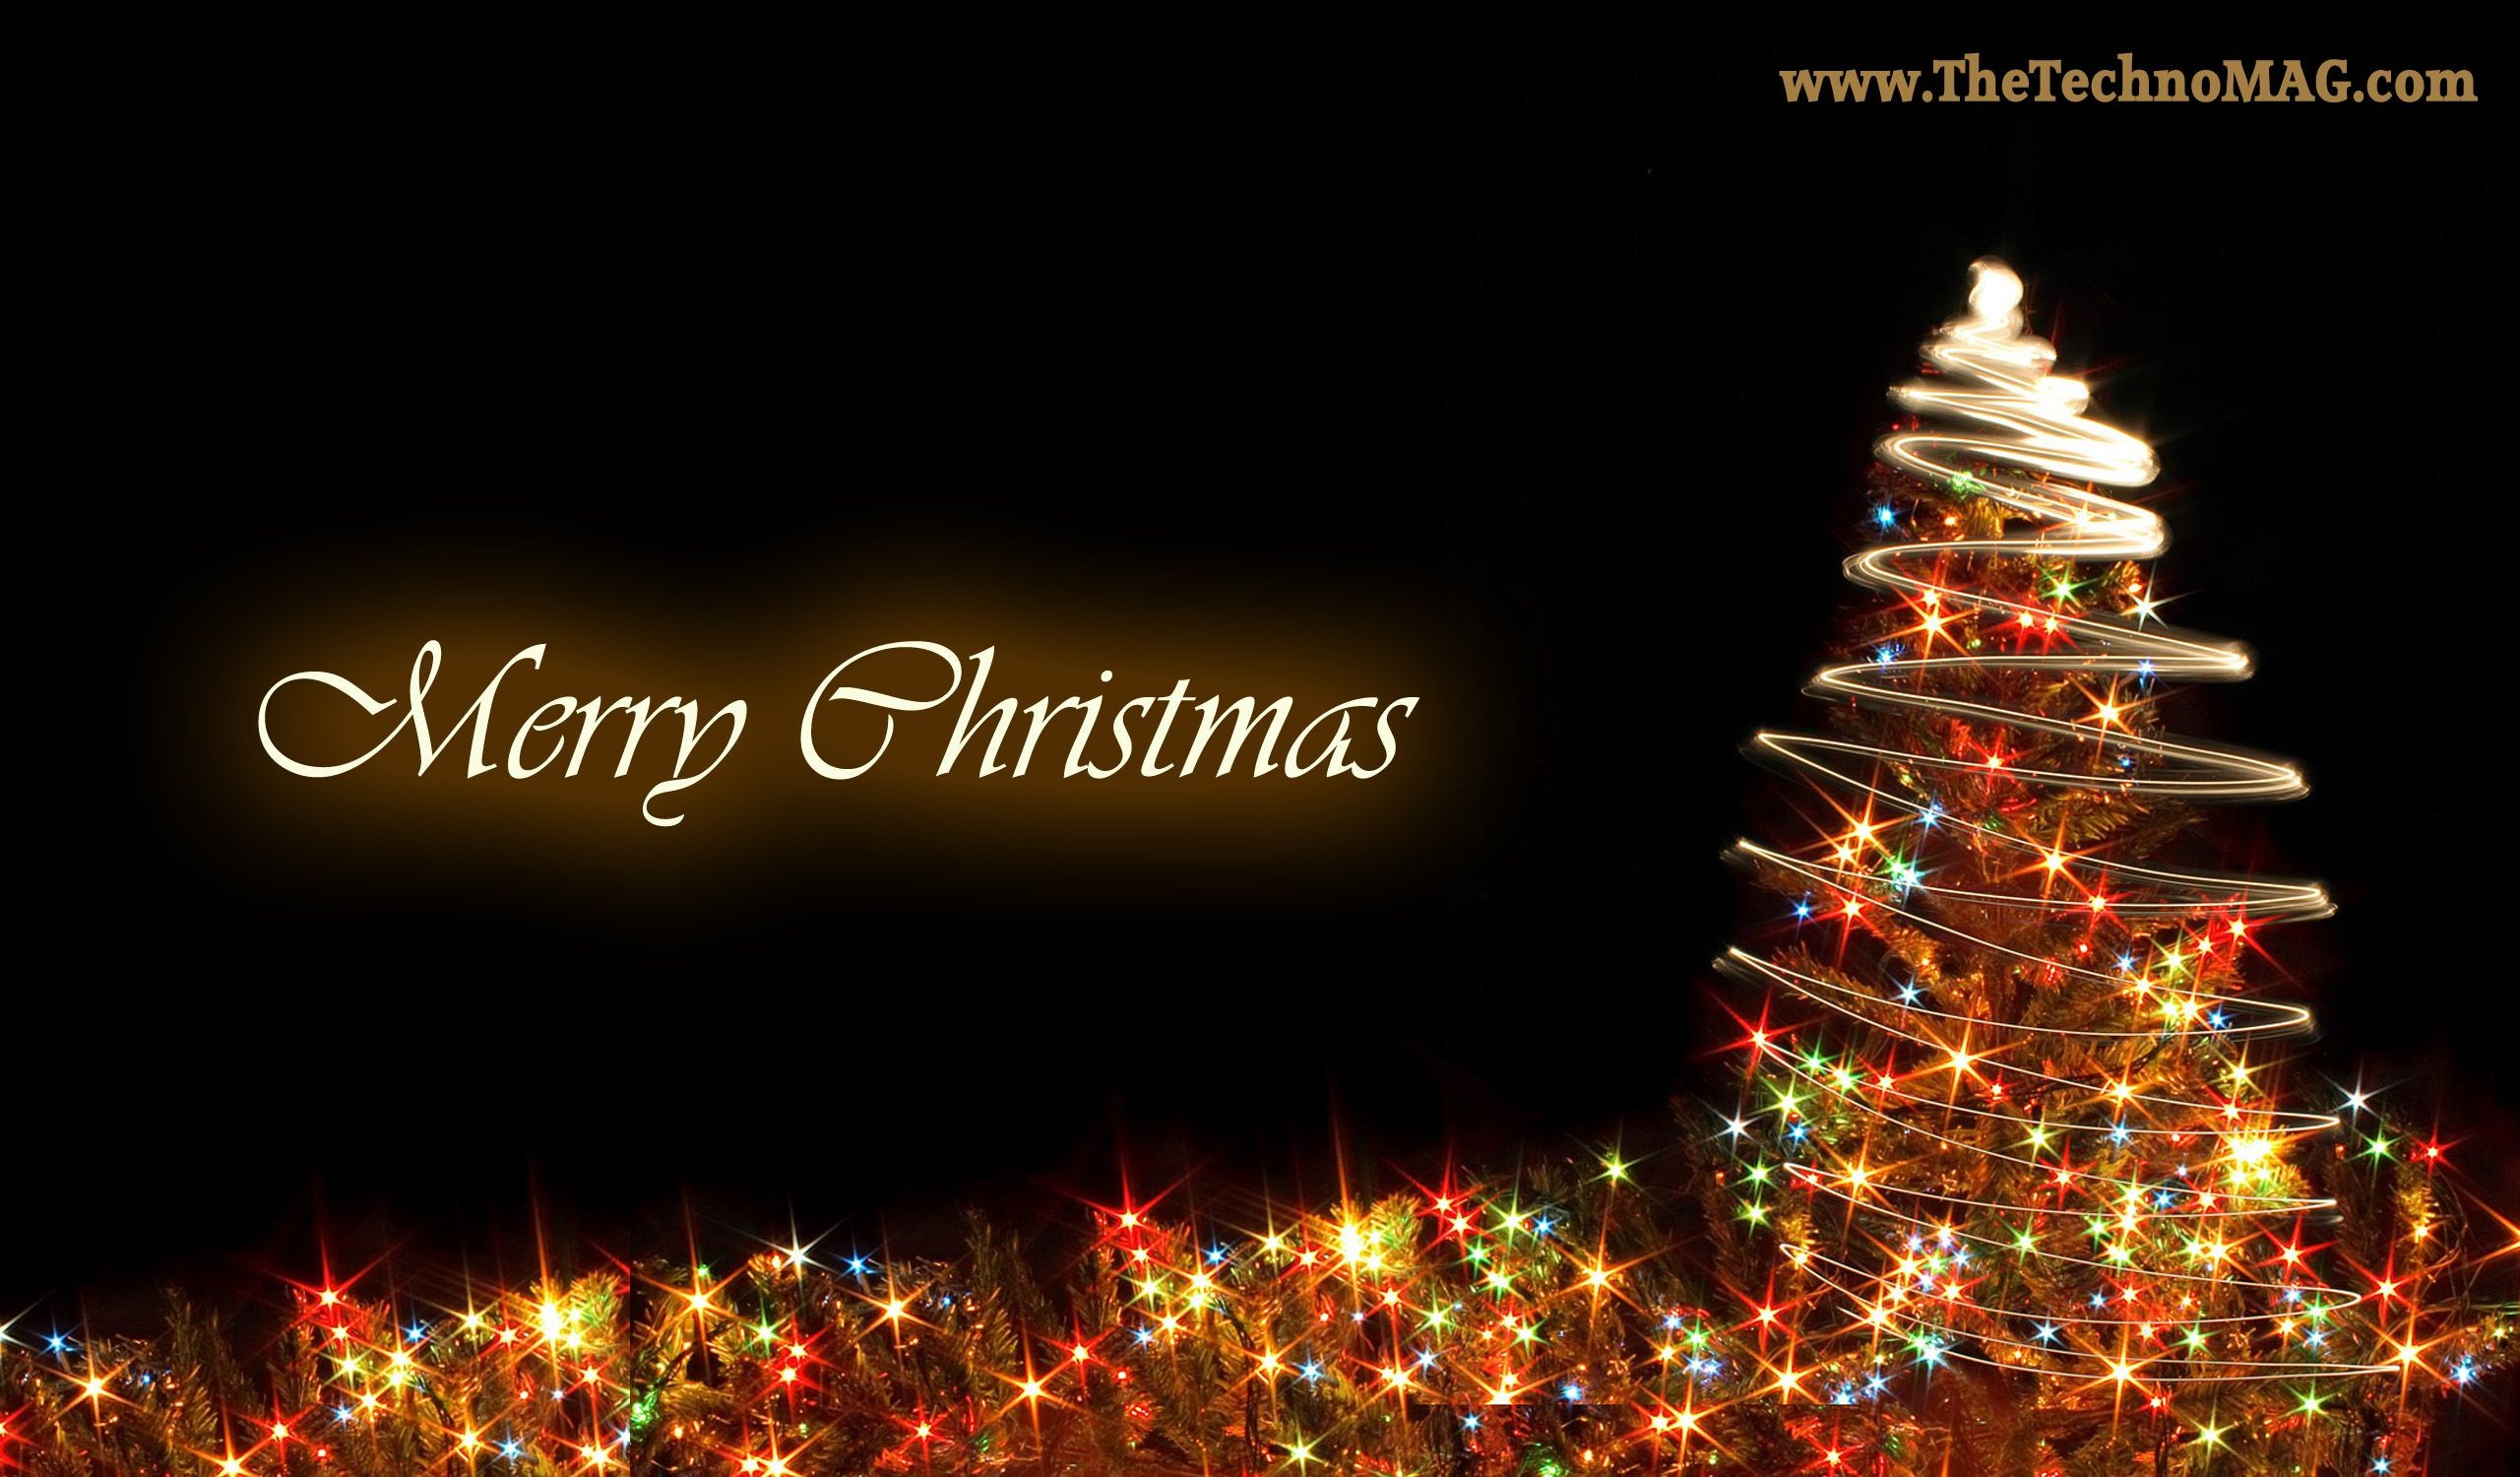 2560x1500 Merry Xmas Wallpapers Desktop On Wallpaper Hd 2560 x 1500 px 1.13 MB  animated christmas 3d